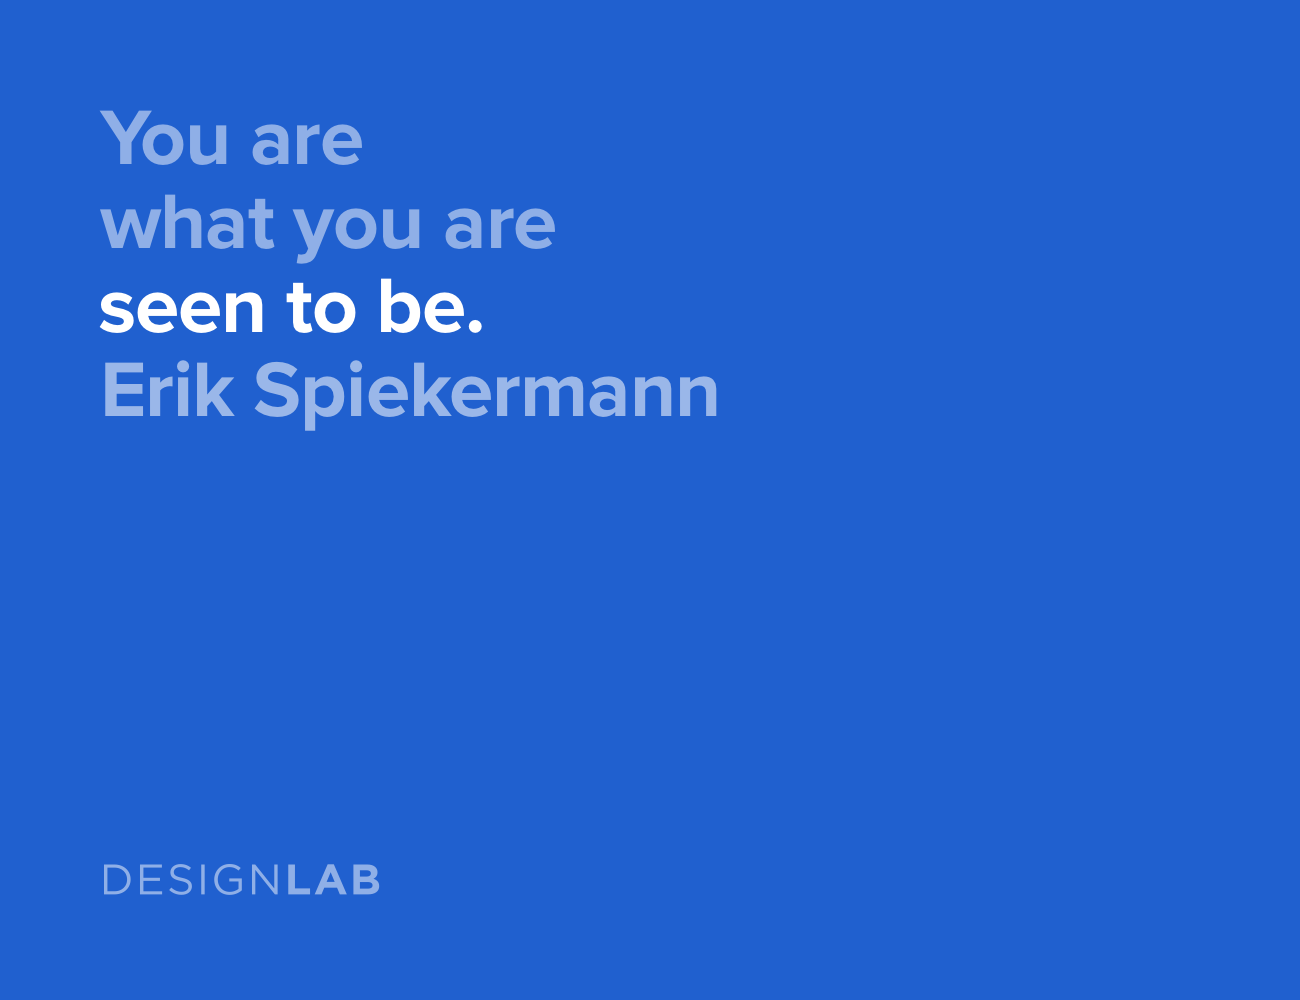 You are what you are seen to be. Erik Spiekermann